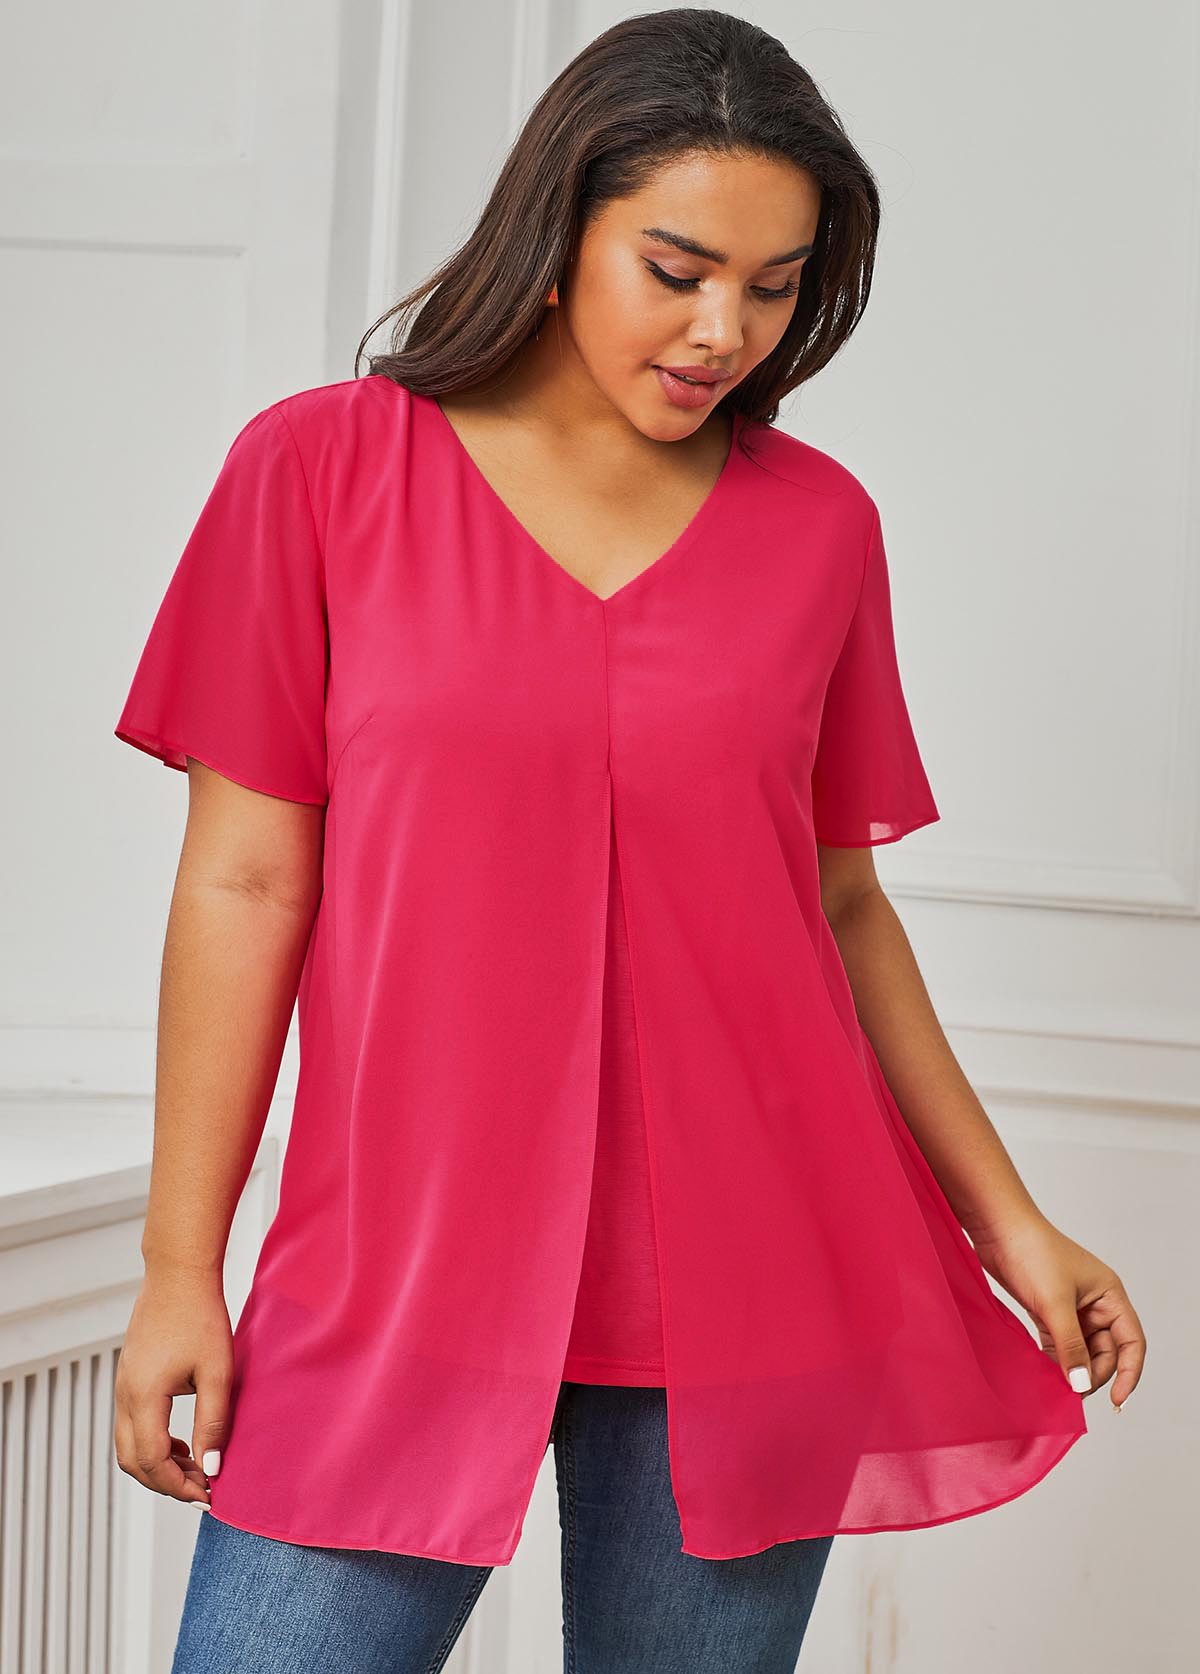 ROTITA V Neck Short Sleeve Pink Plus Size T Shirt